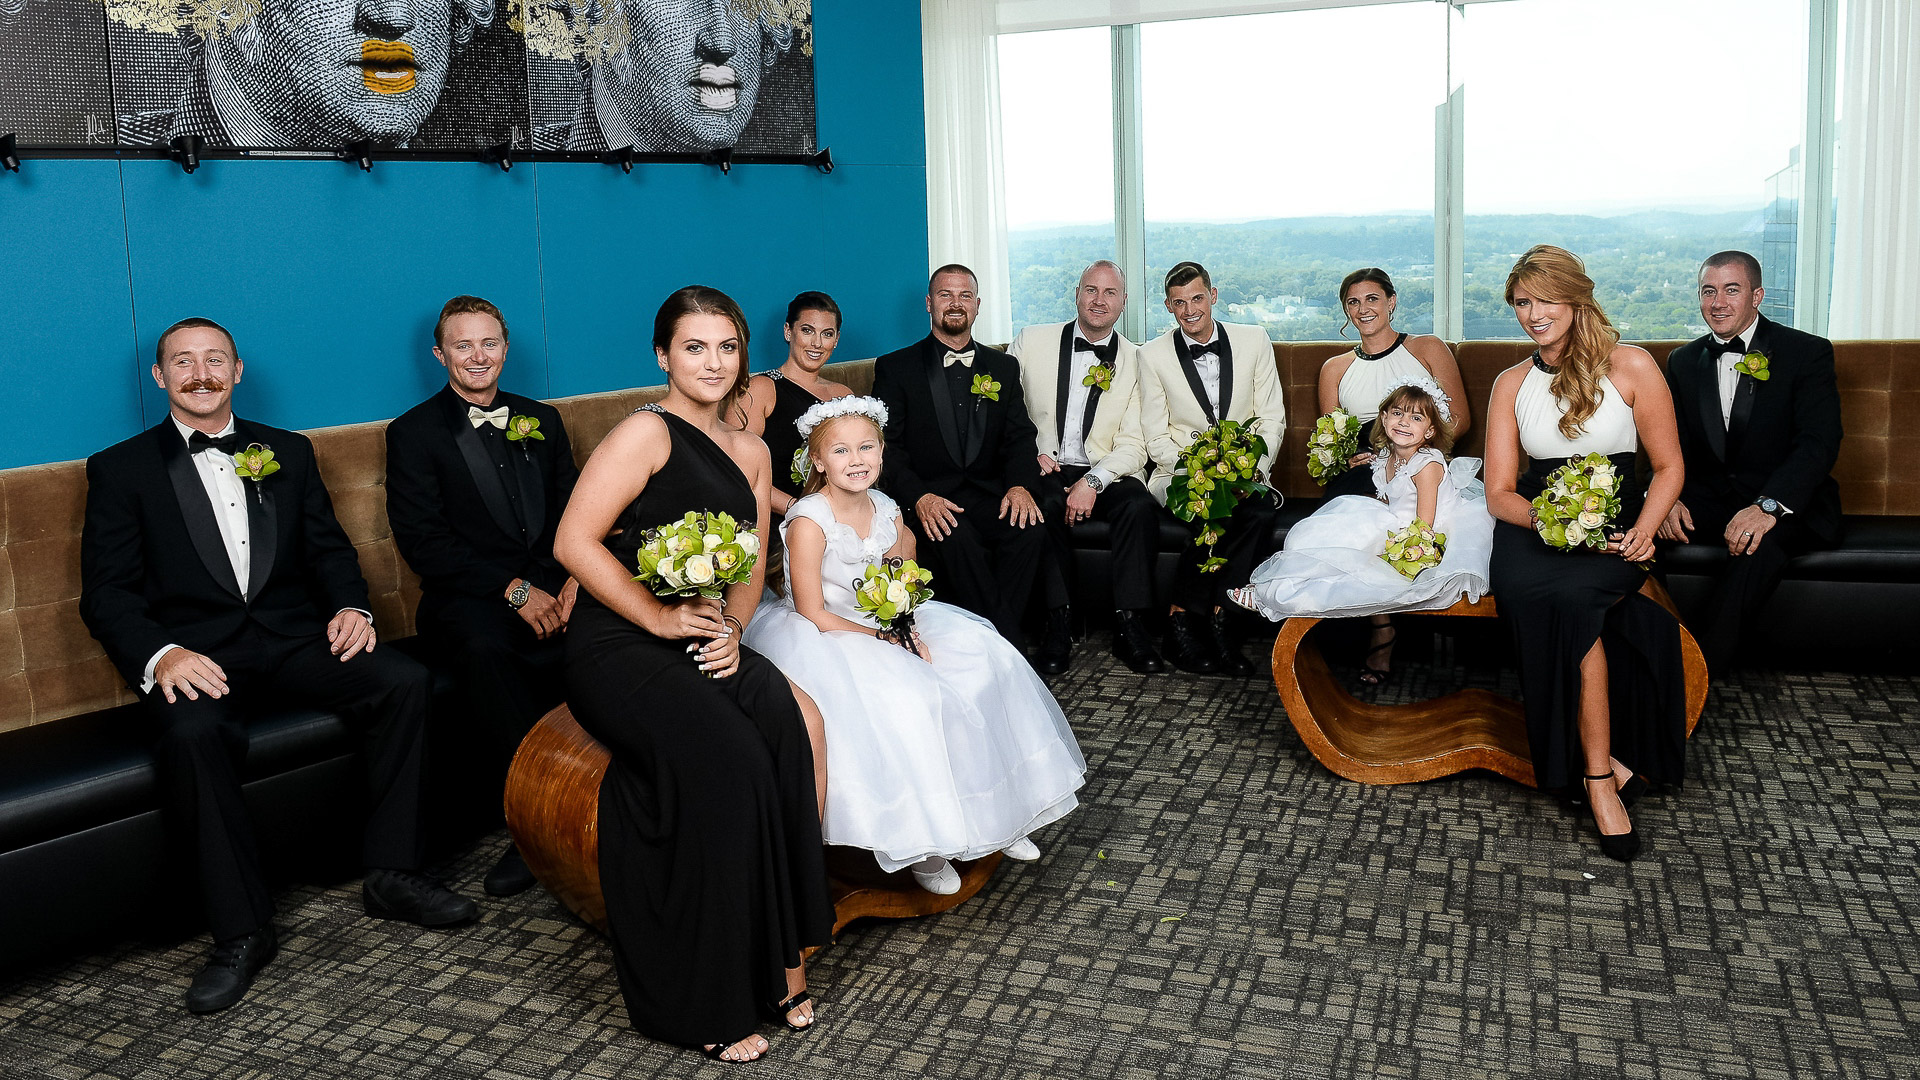 Gay wedding bridal party portrait at the Ritz Carlton 42 restaurant in White Plains NY